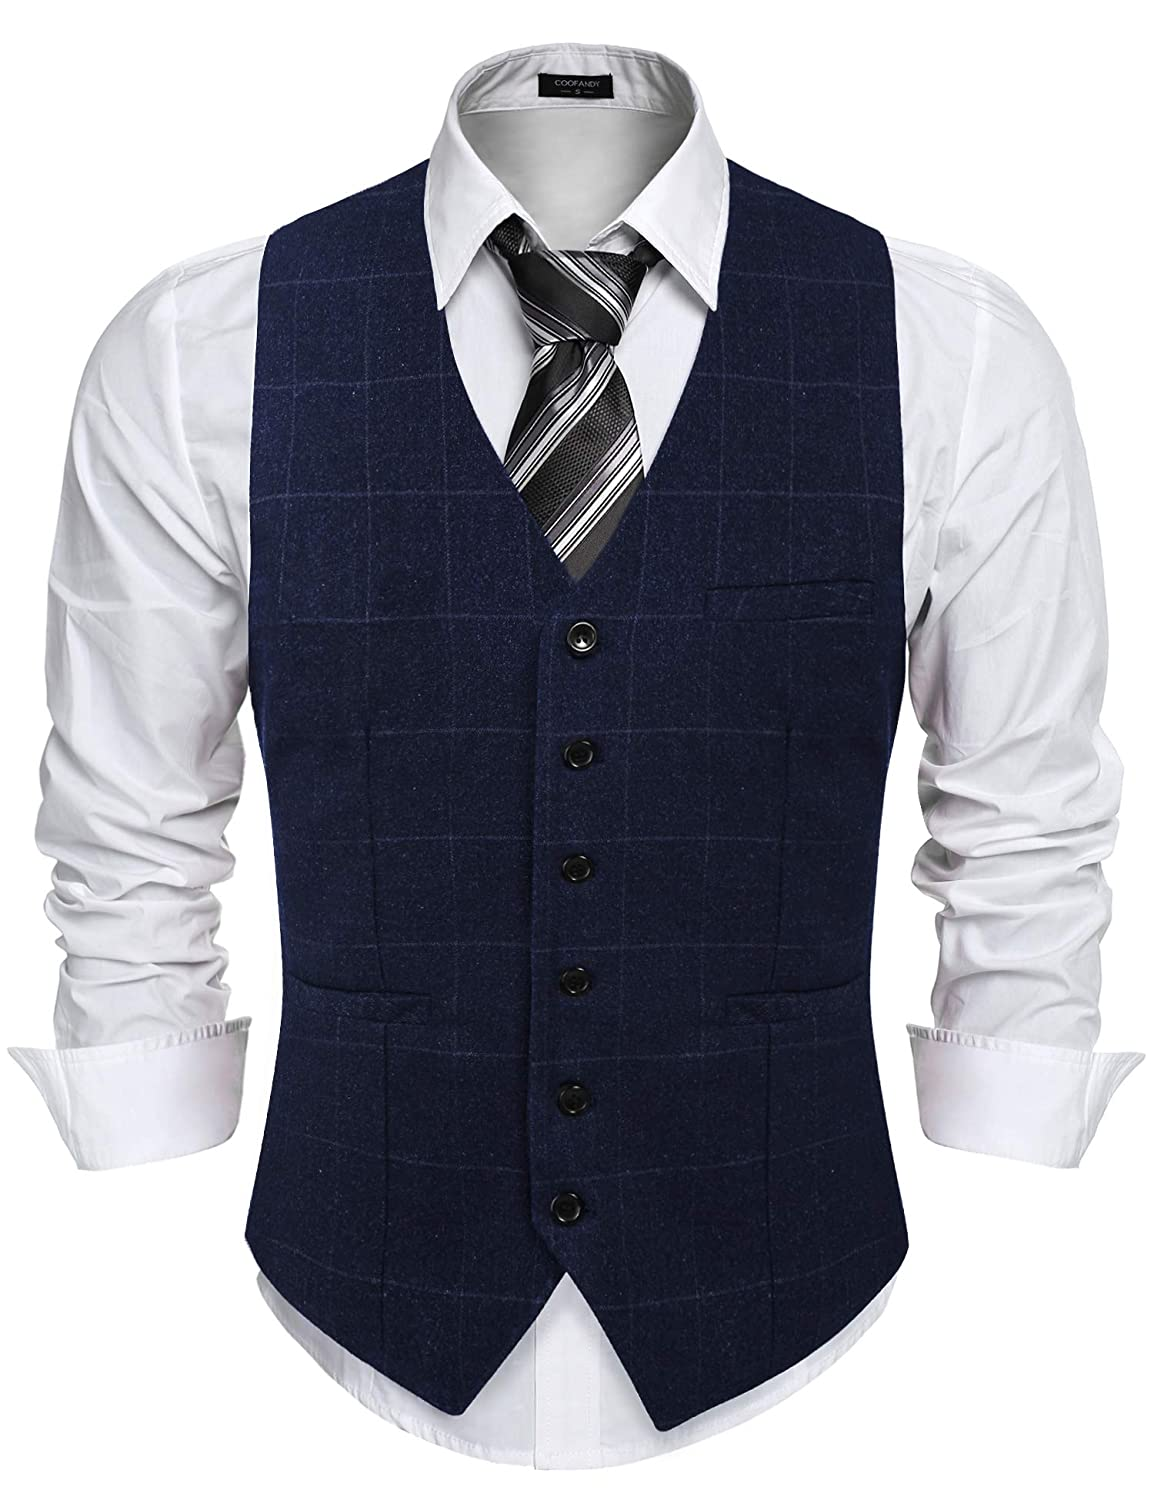 Mens Waistcoat Vest Slim Fit V Neck Formal Waistcoat Casual Retro Suit with Pocket for Wedding Business Party